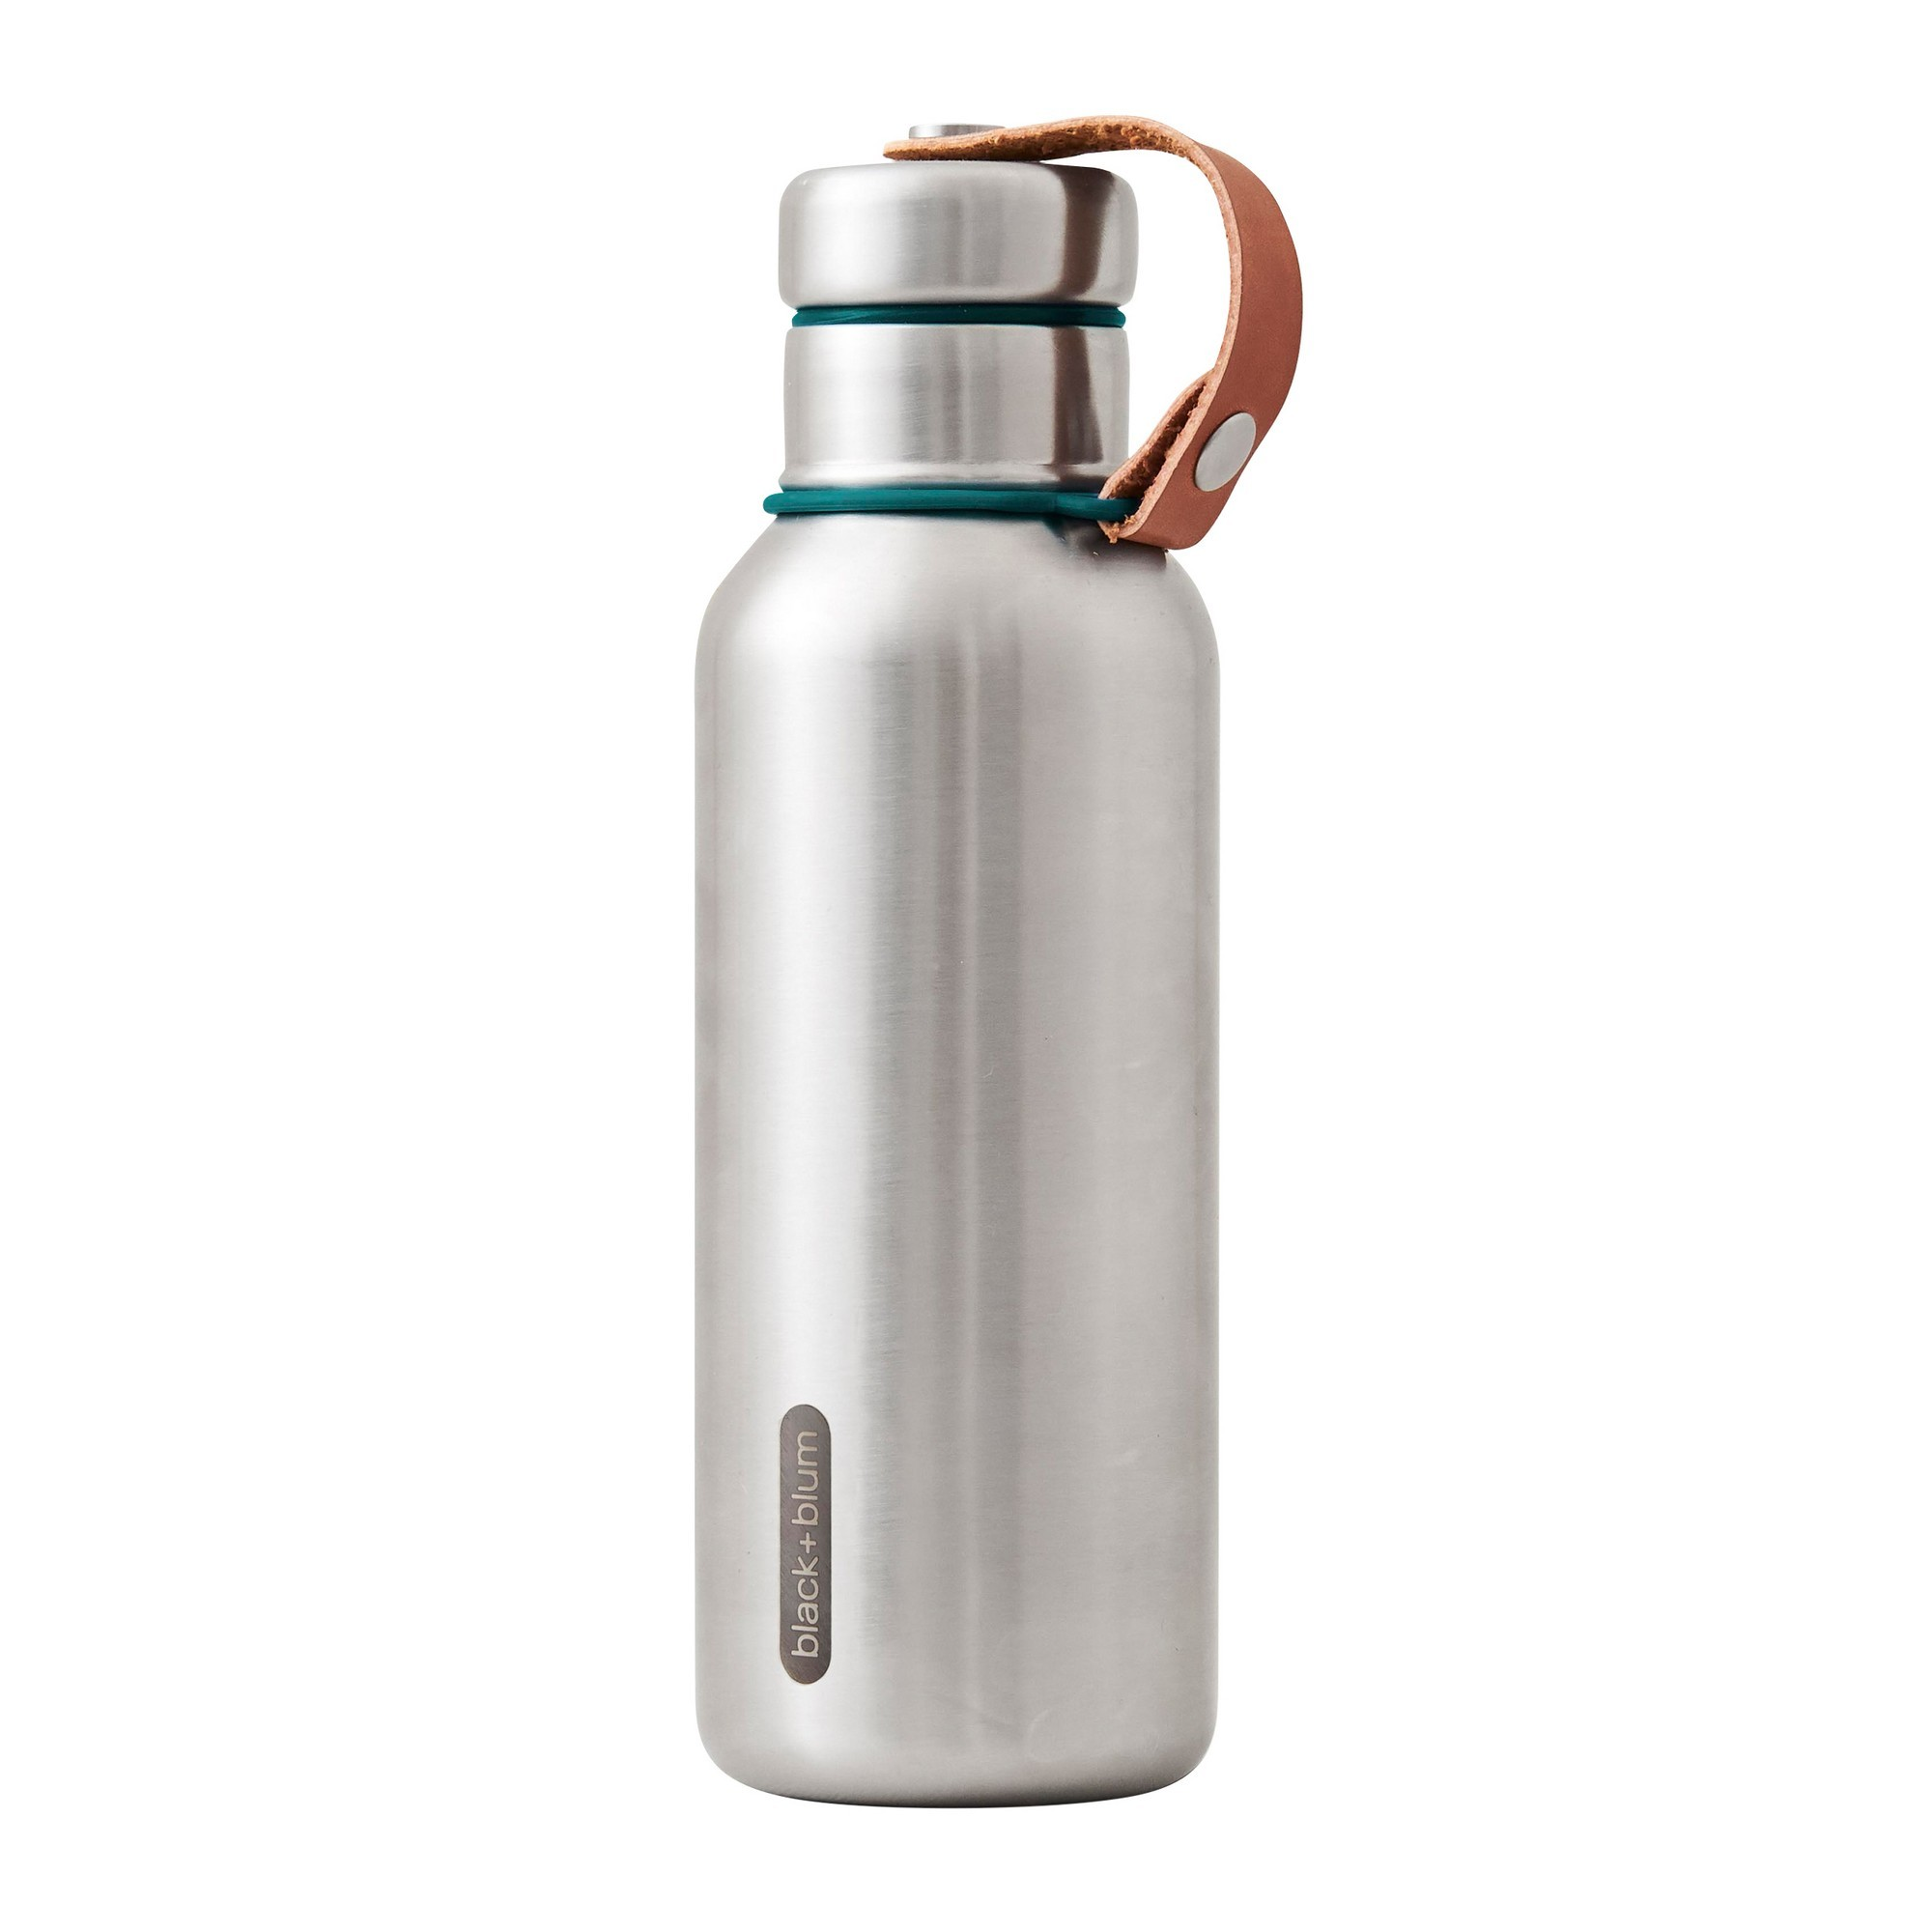 Black + Blum Stainless Steel Insulated Water Bottle, 500ml, Ocean